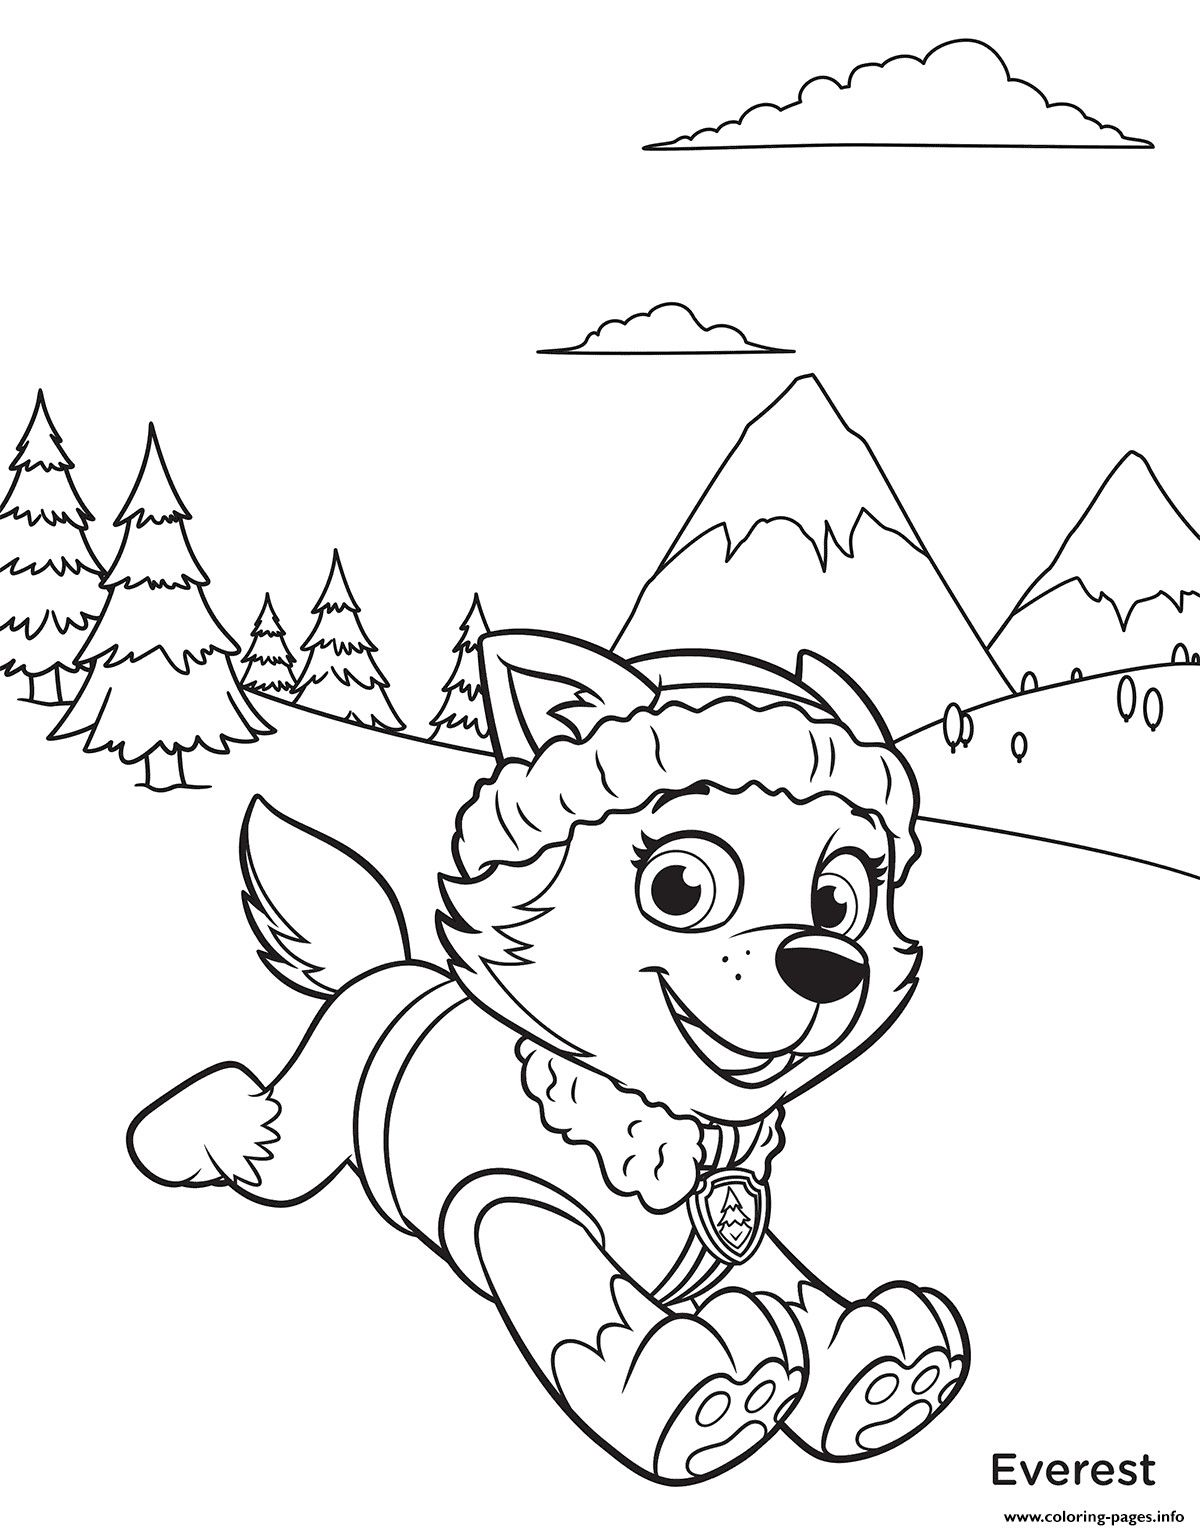 Paw Patrol Coloring Sheets Lovely Print Paw Patrol Everest In